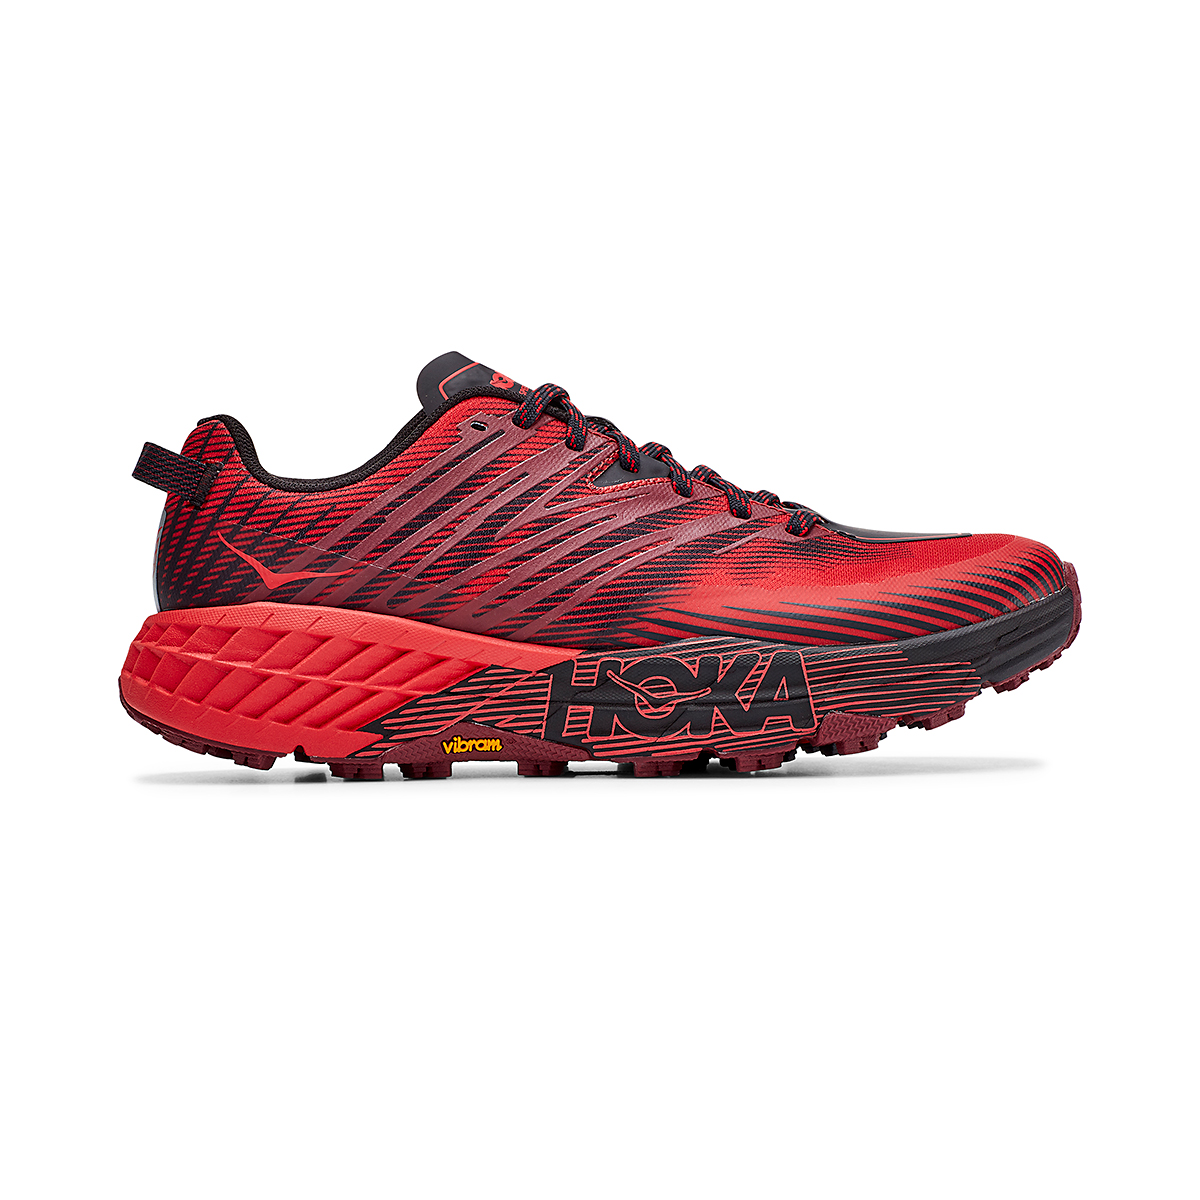 Men's Hoka One One Speedgoat 4 Trail Running Shoe - Color: Cordovan/High Risk Red - Size: 7 - Width: Regular, Cordovan/High Risk Red, large, image 1